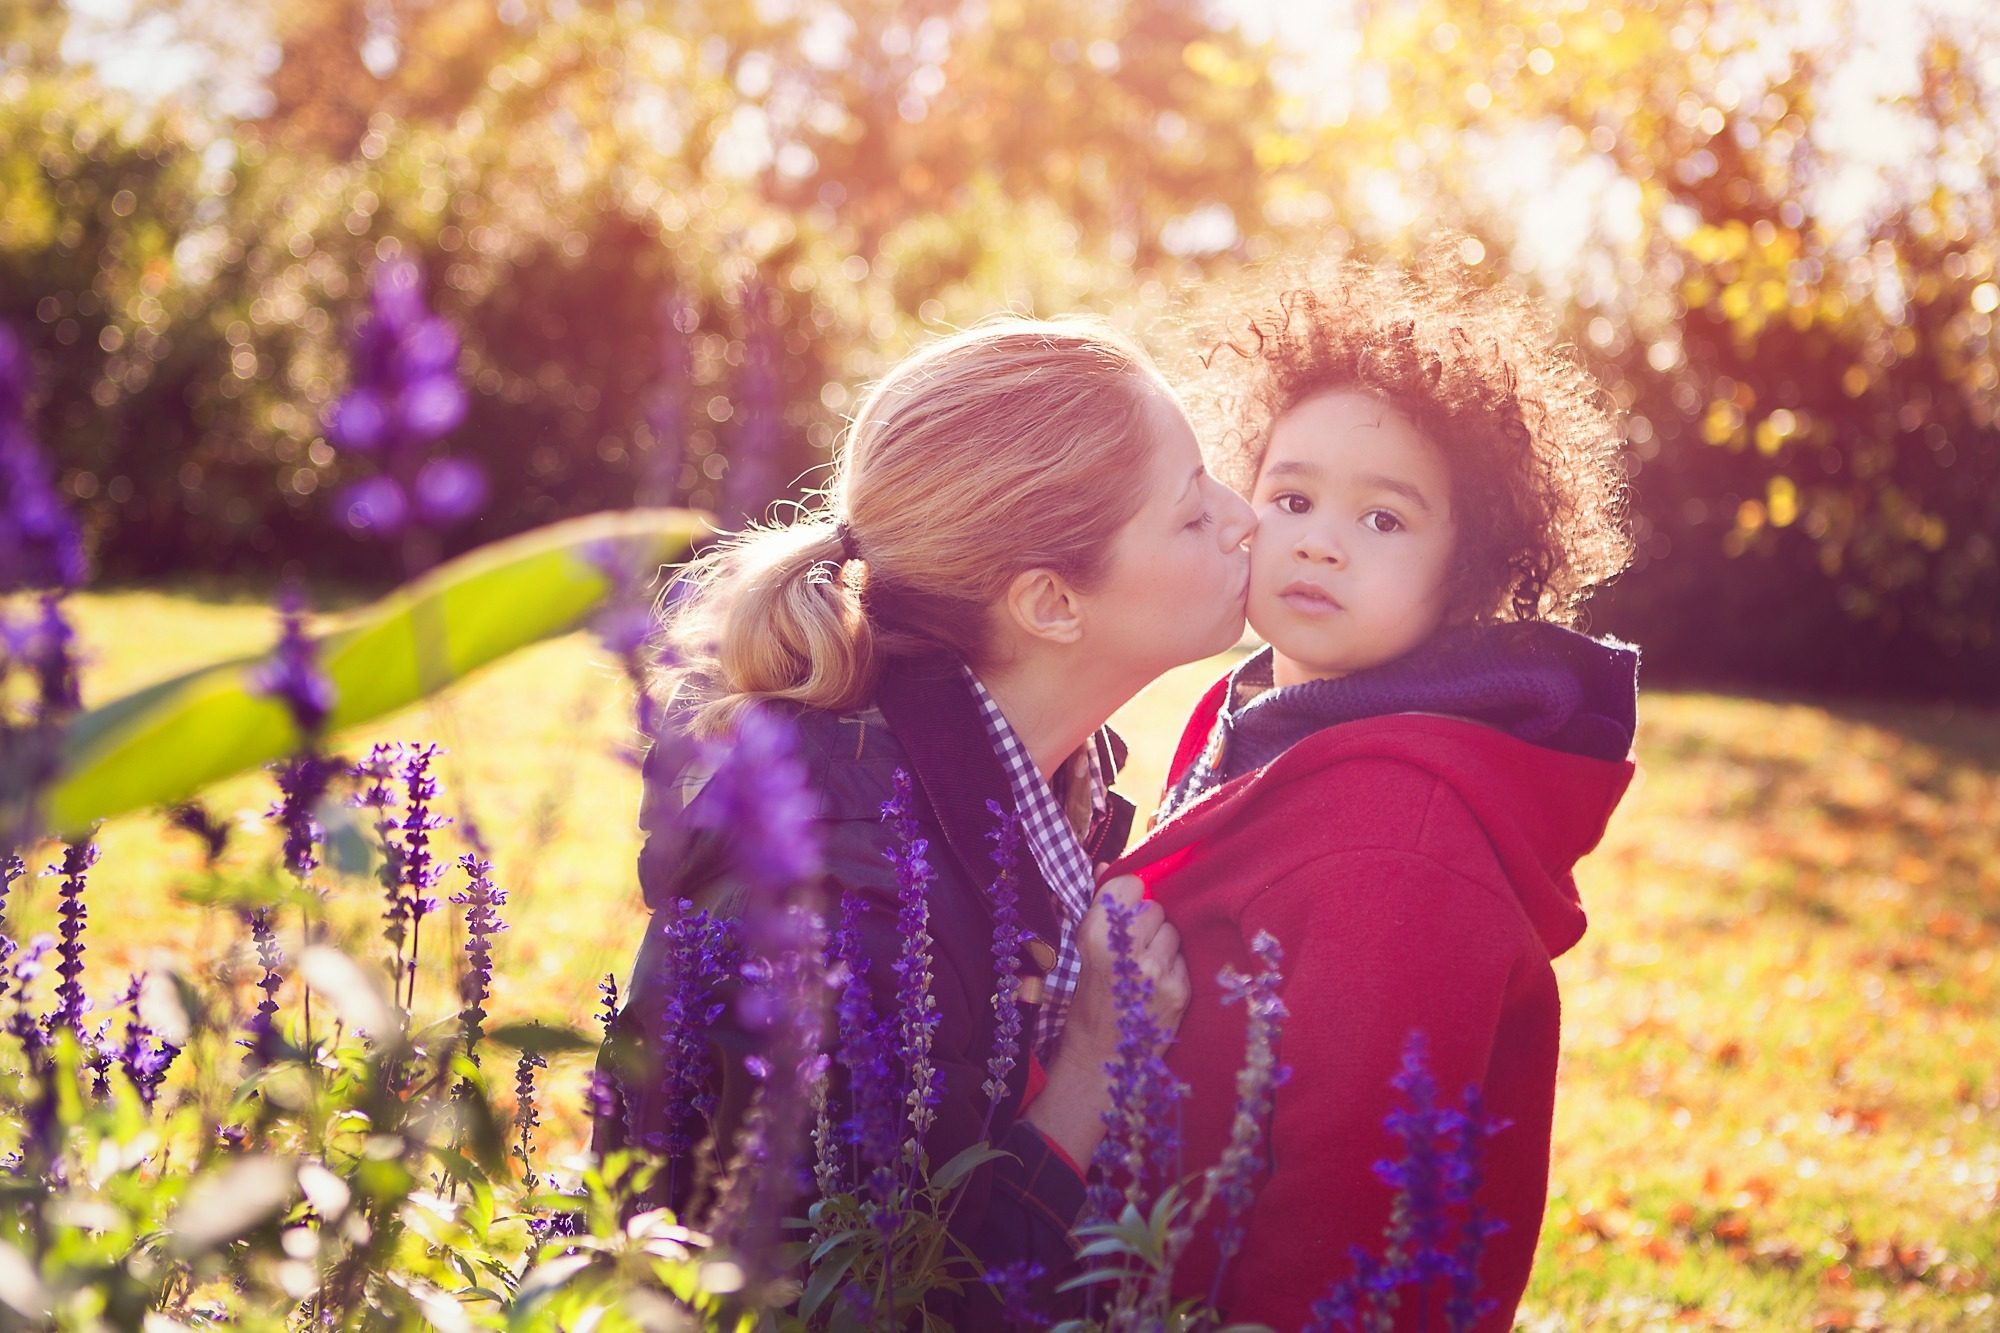 Portrait photo of a mother kissing her son in a garden